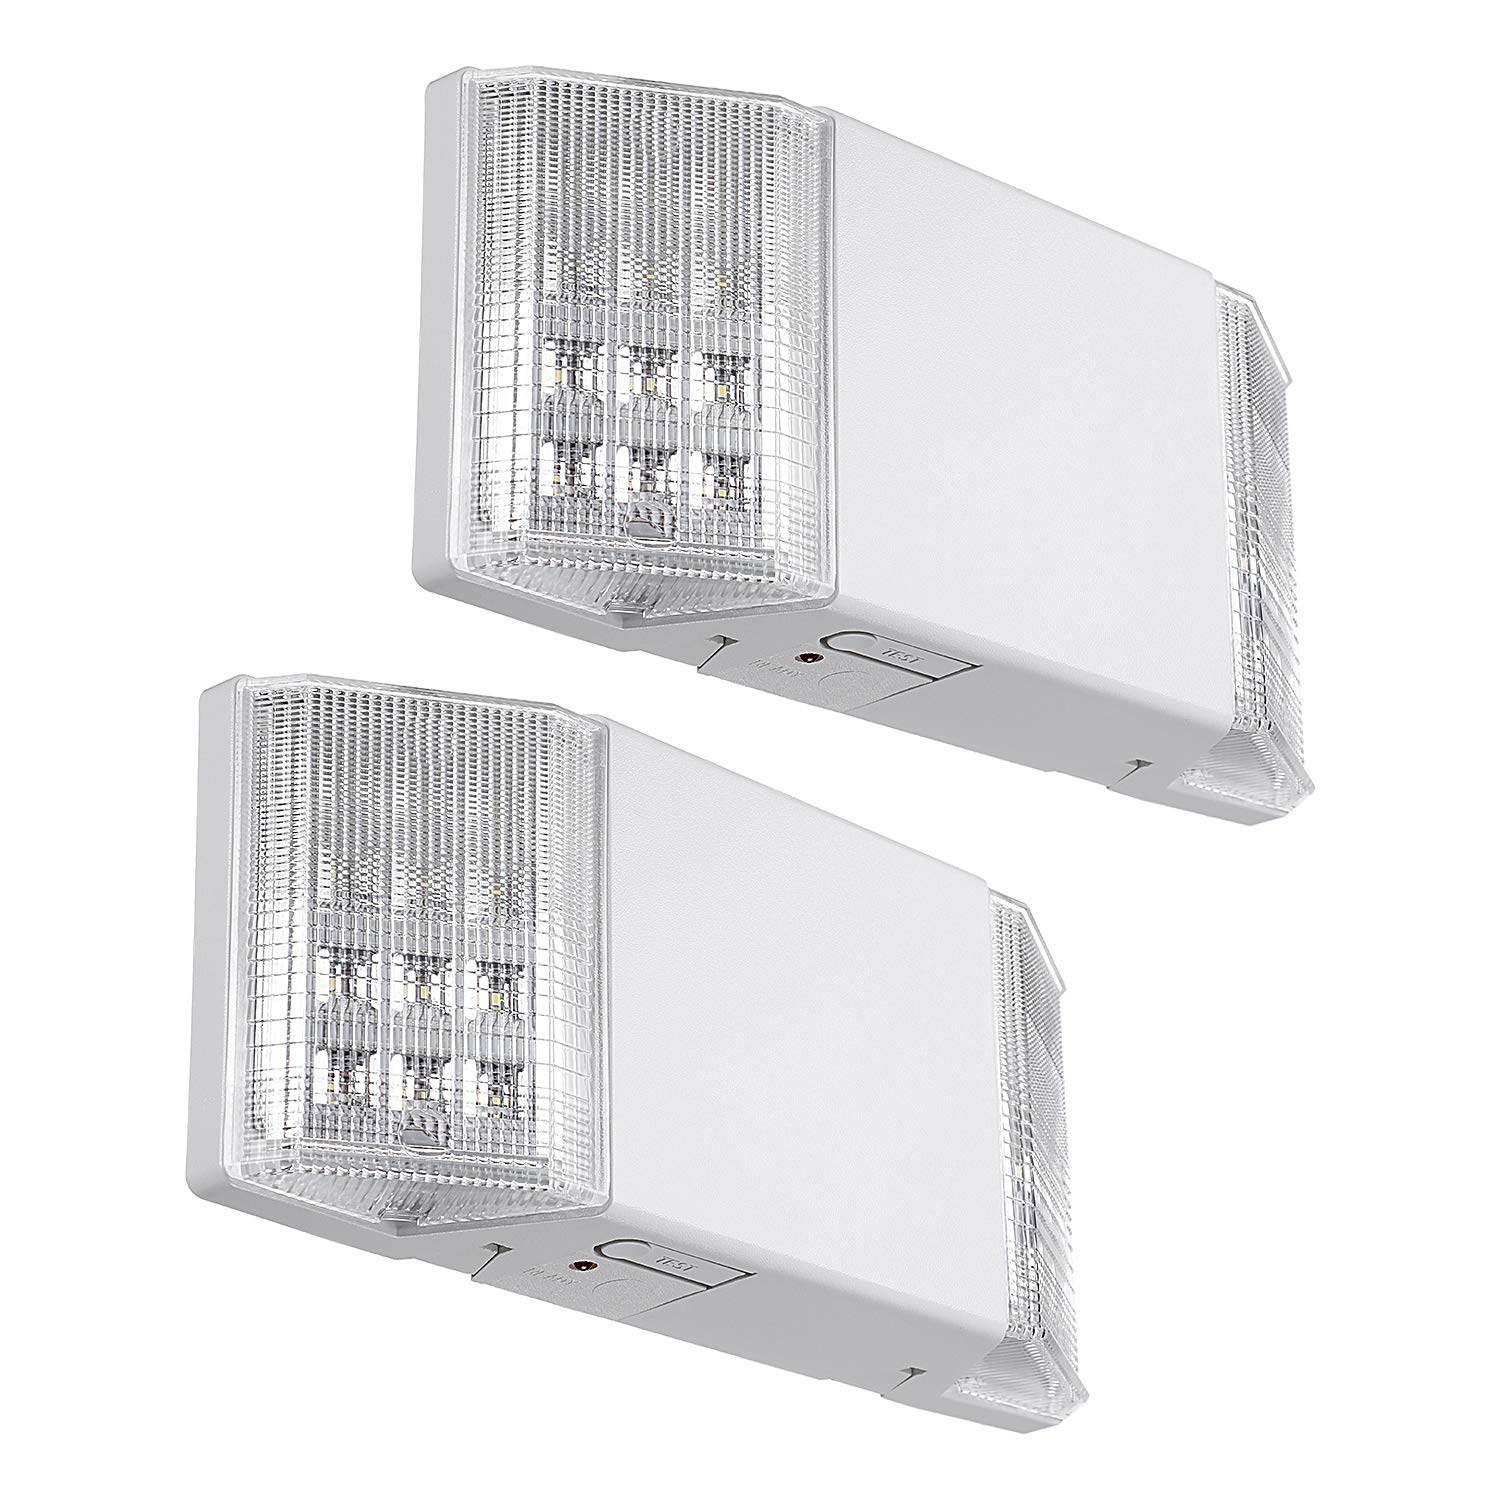 TORCHSTAR LED Emergency Exit Light Fixtures, Two LED Square Heads, with Battery Backup UL-Listed, 120V/277V Input, High Light Blackout Output for Home, Hallways, Corridors, Stairways, White, Pack of 2